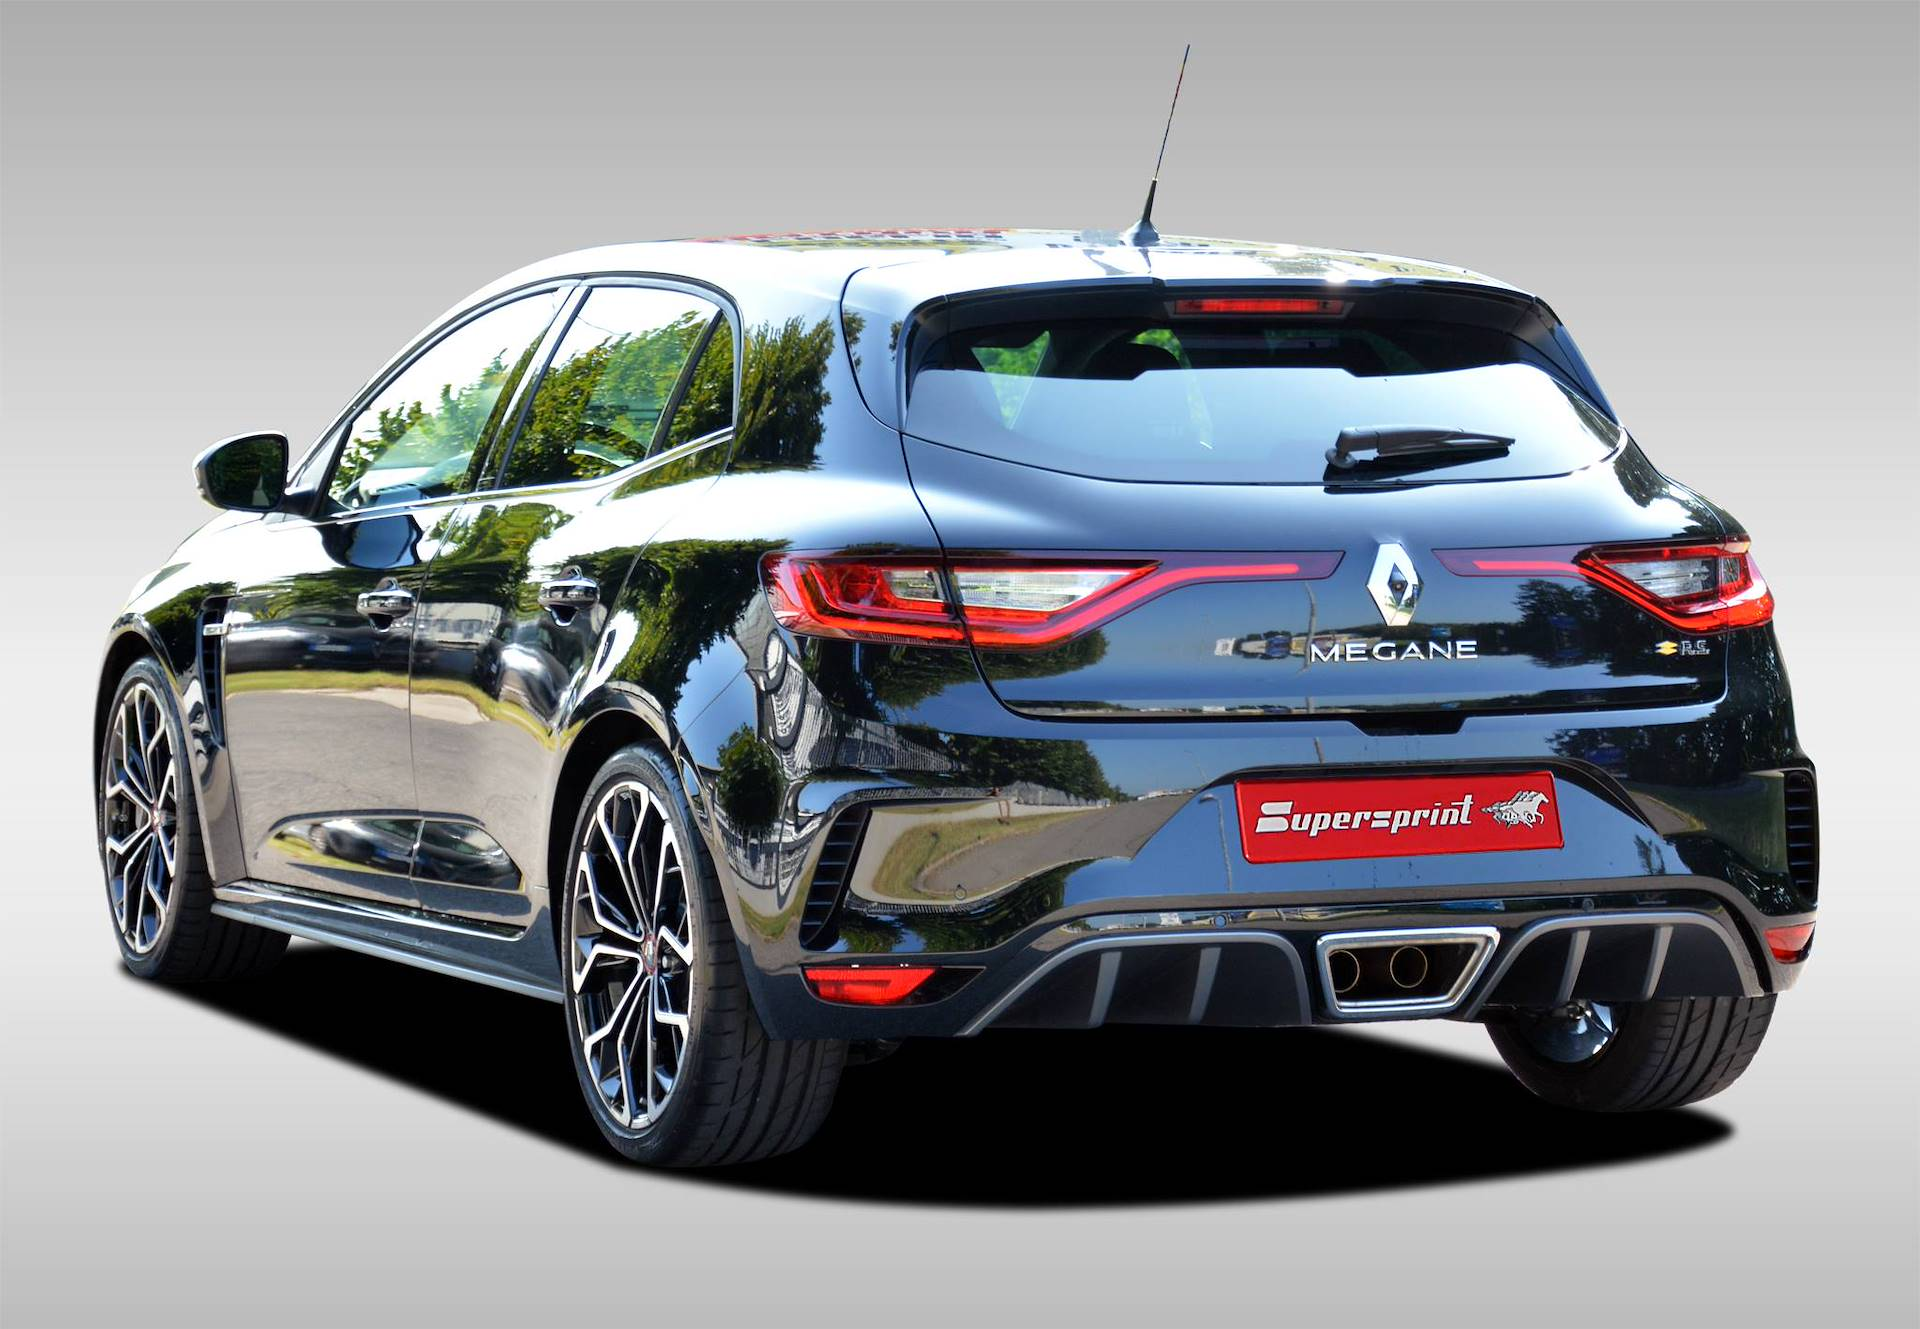 Supersprint Exhaust For Renault Megane Iv 1 8t R S 280 Hp 2018